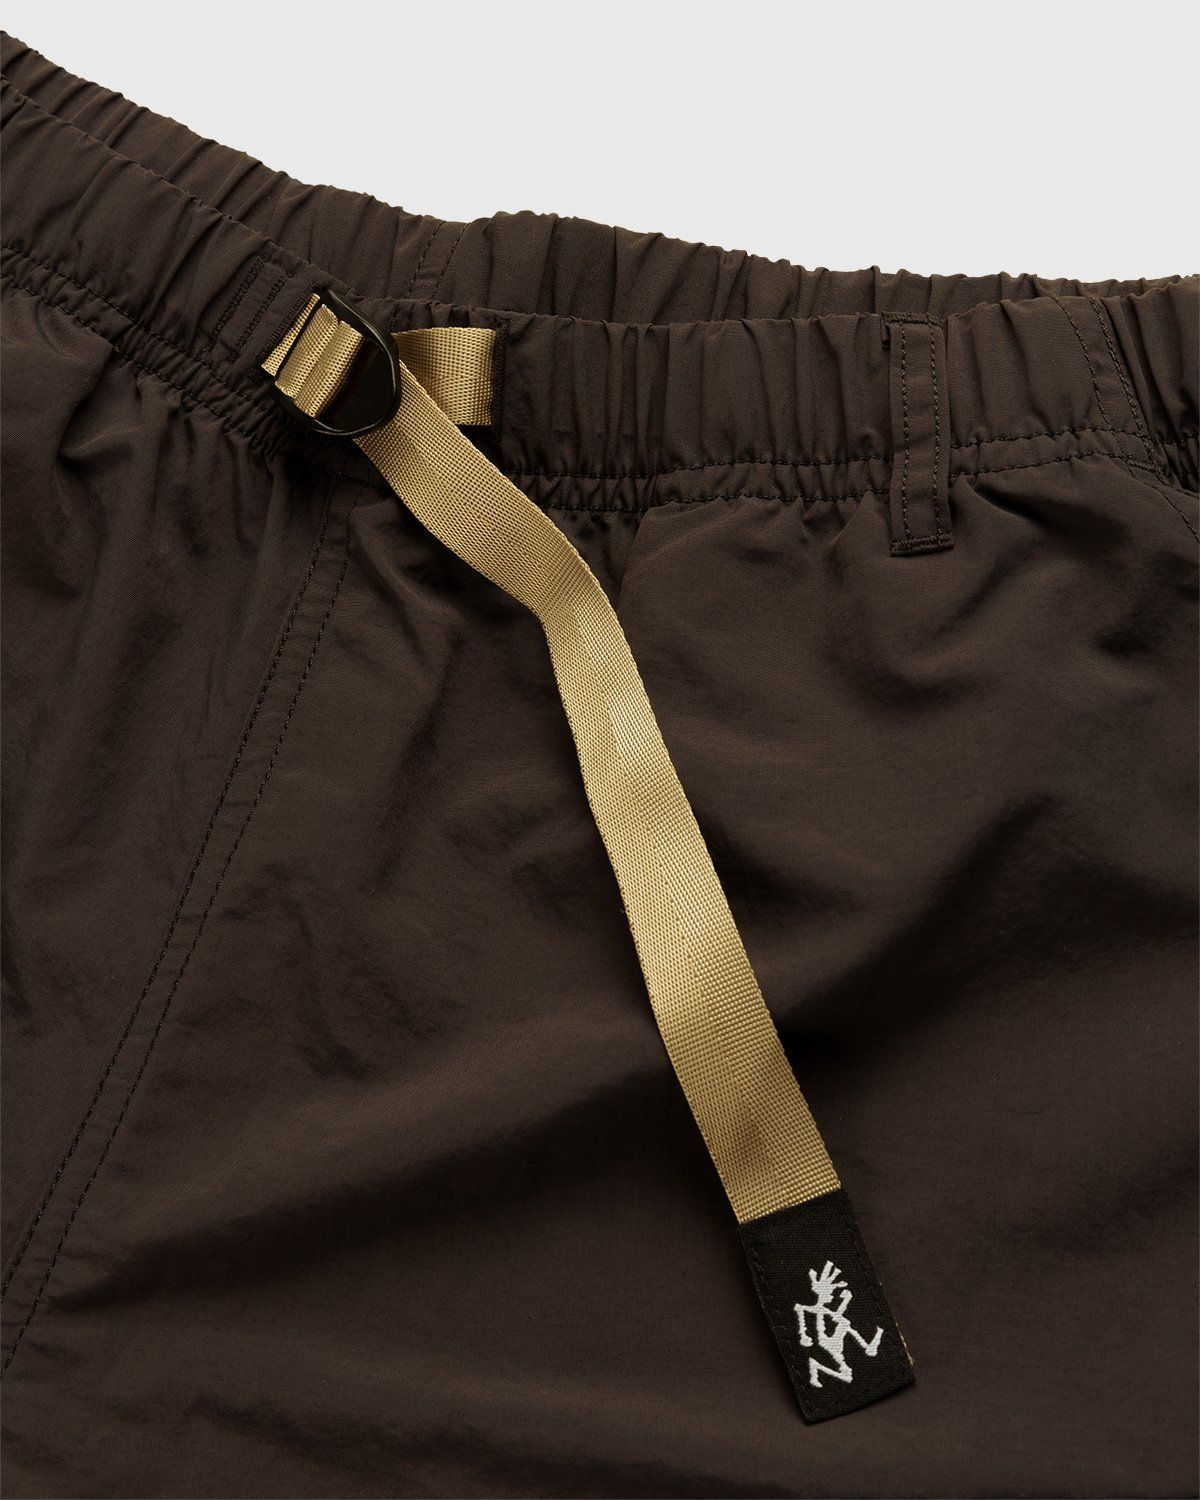 Gramicci for Highsnobiety – Shorts Brown - Image 3